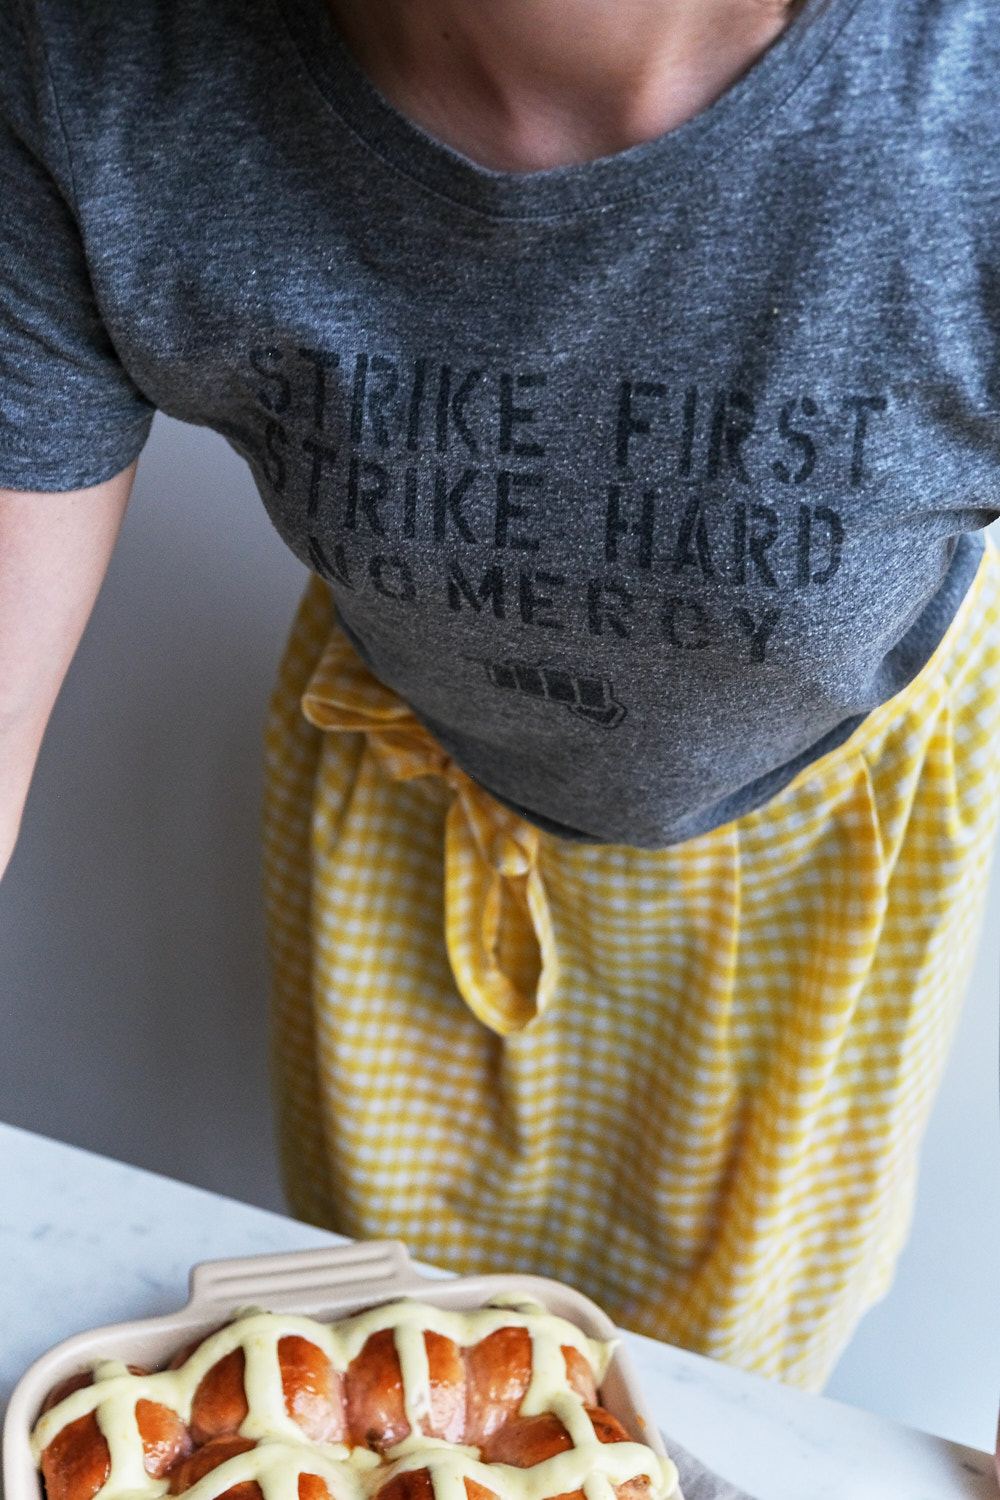 A girl in a t shirt with a yellow gingham apron and a pan of hot cross buns.